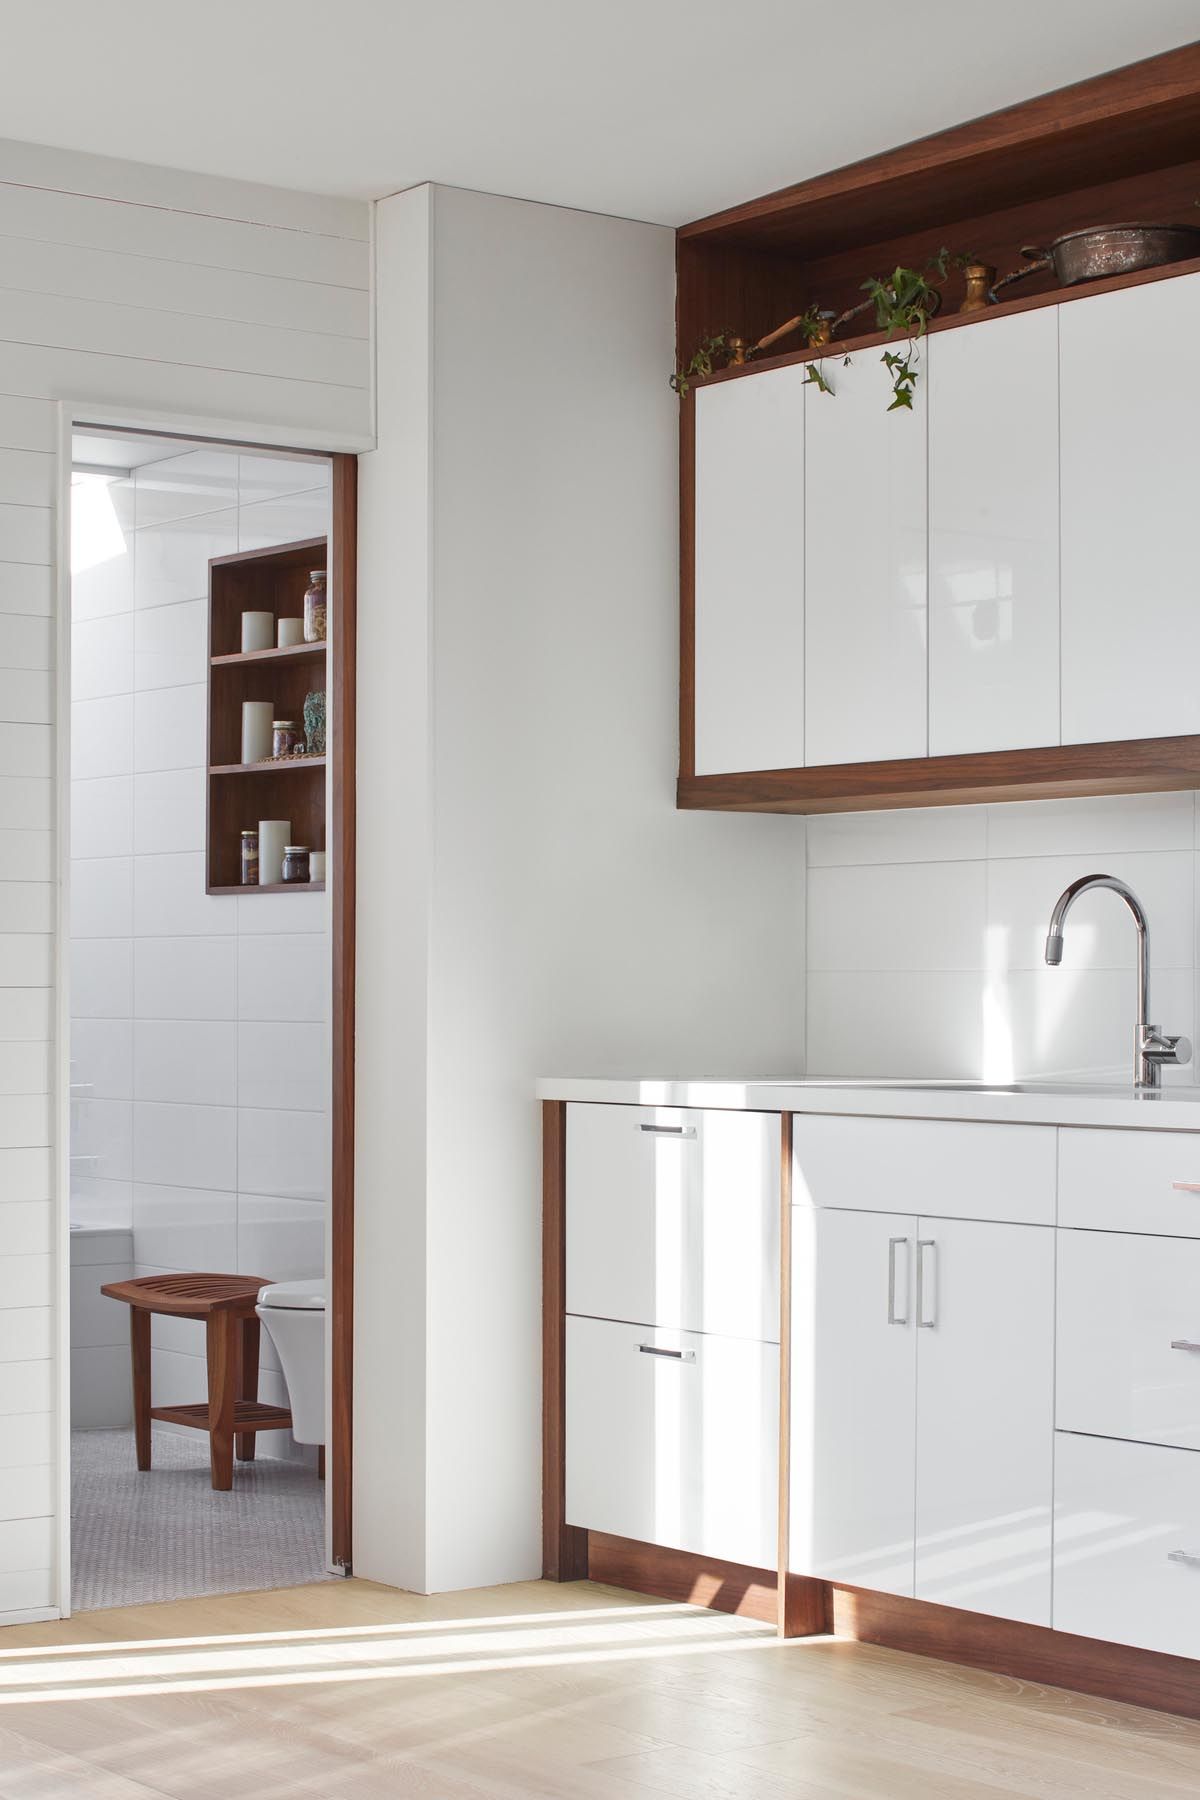 A small kitchenette with white and wood cabinetry and a matching white countertop.